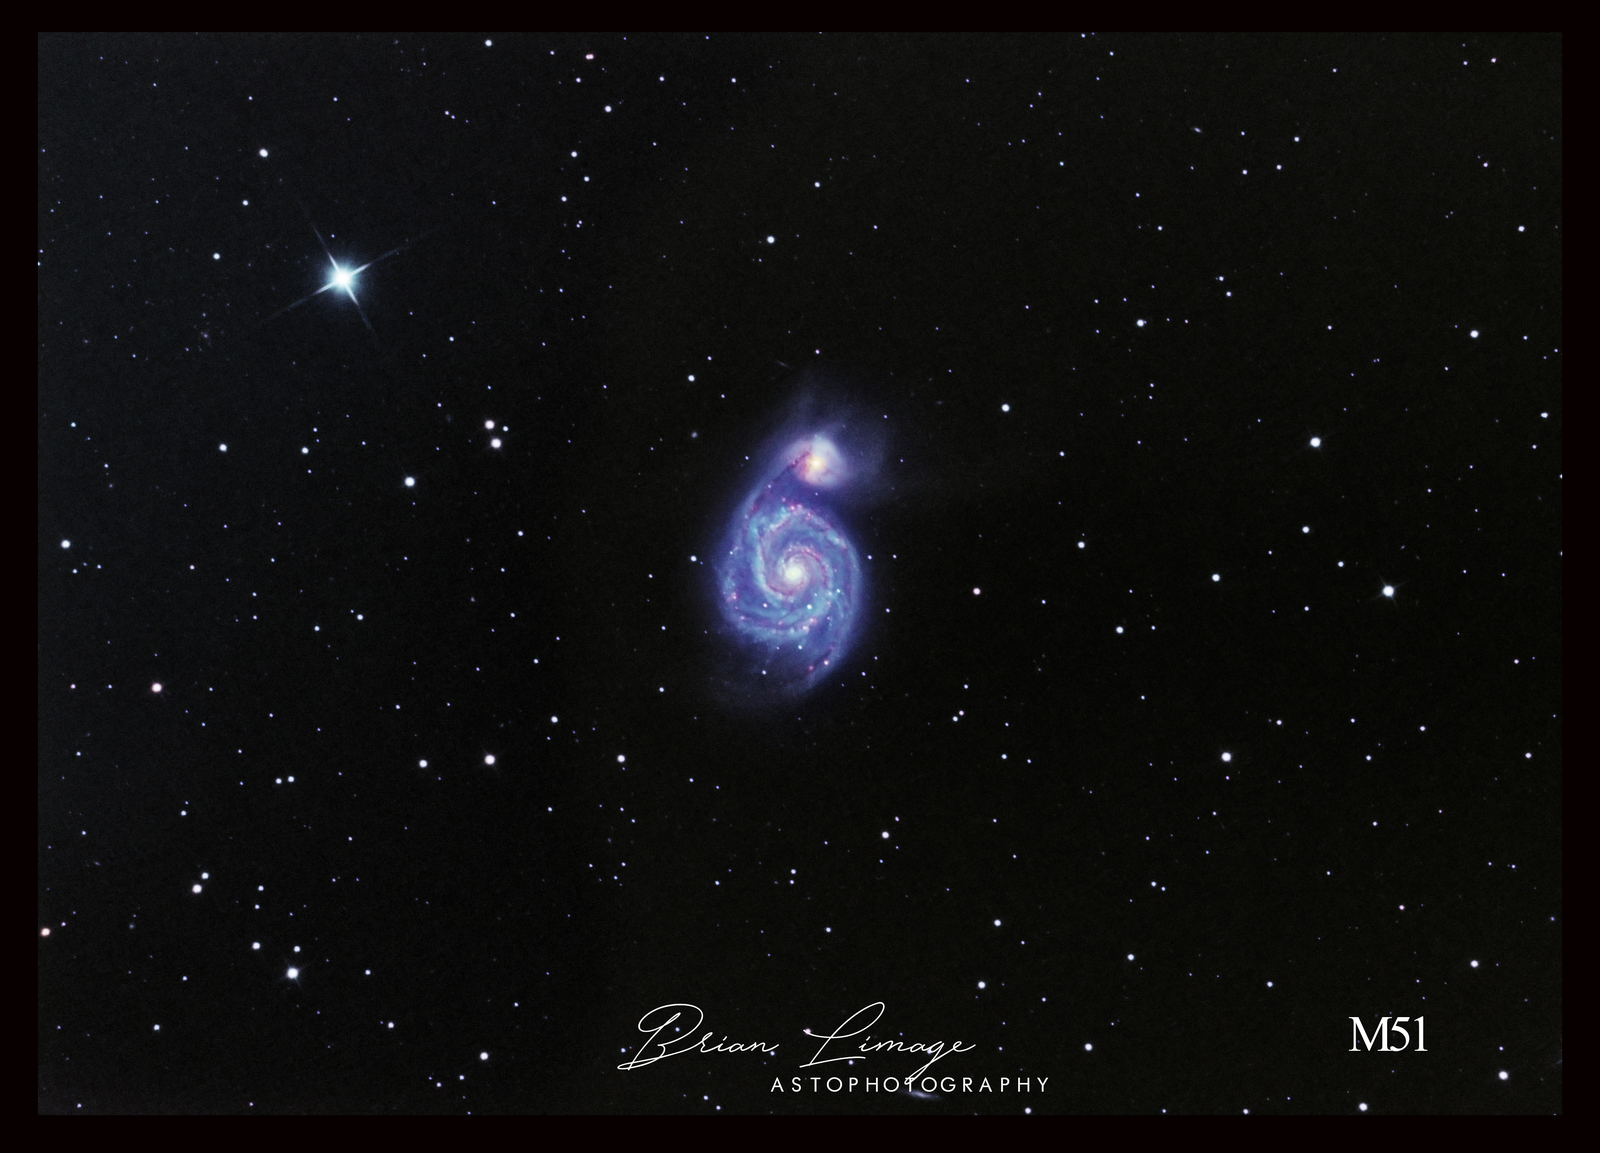 M51 - Border and Title.jpg